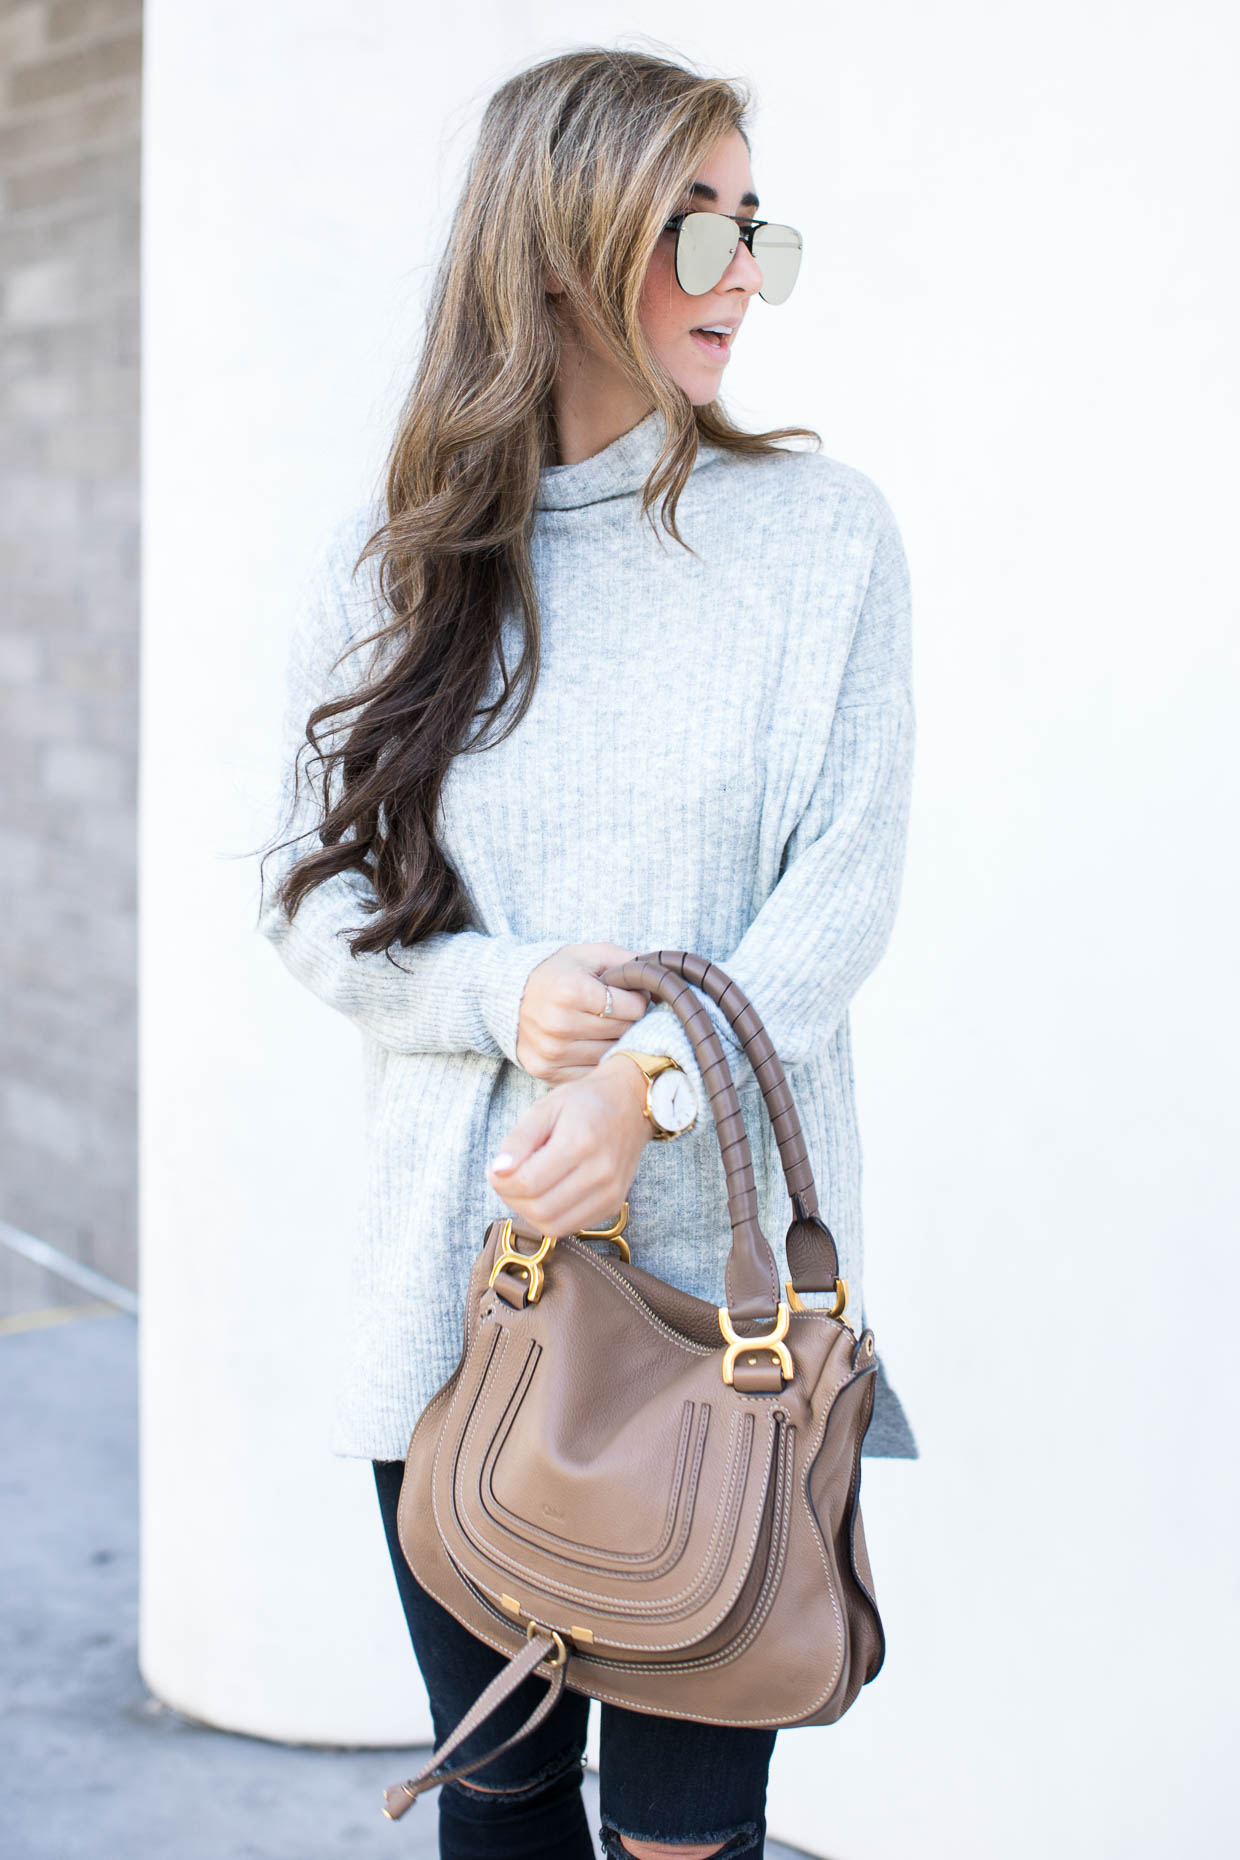 Fashion blogger The Darling Detail wears Topshop Oversized Funnel Neck Sweater, FRAME 'Le High Skinny' High Rise Crop Jeans (Sterling), LE SPECS 'The Prince' 57mm Sunglasses, Chloe 'Marcie - Small' Leather Satchel, Larsson & Jennings 'Lugano' Mesh Strap Watch